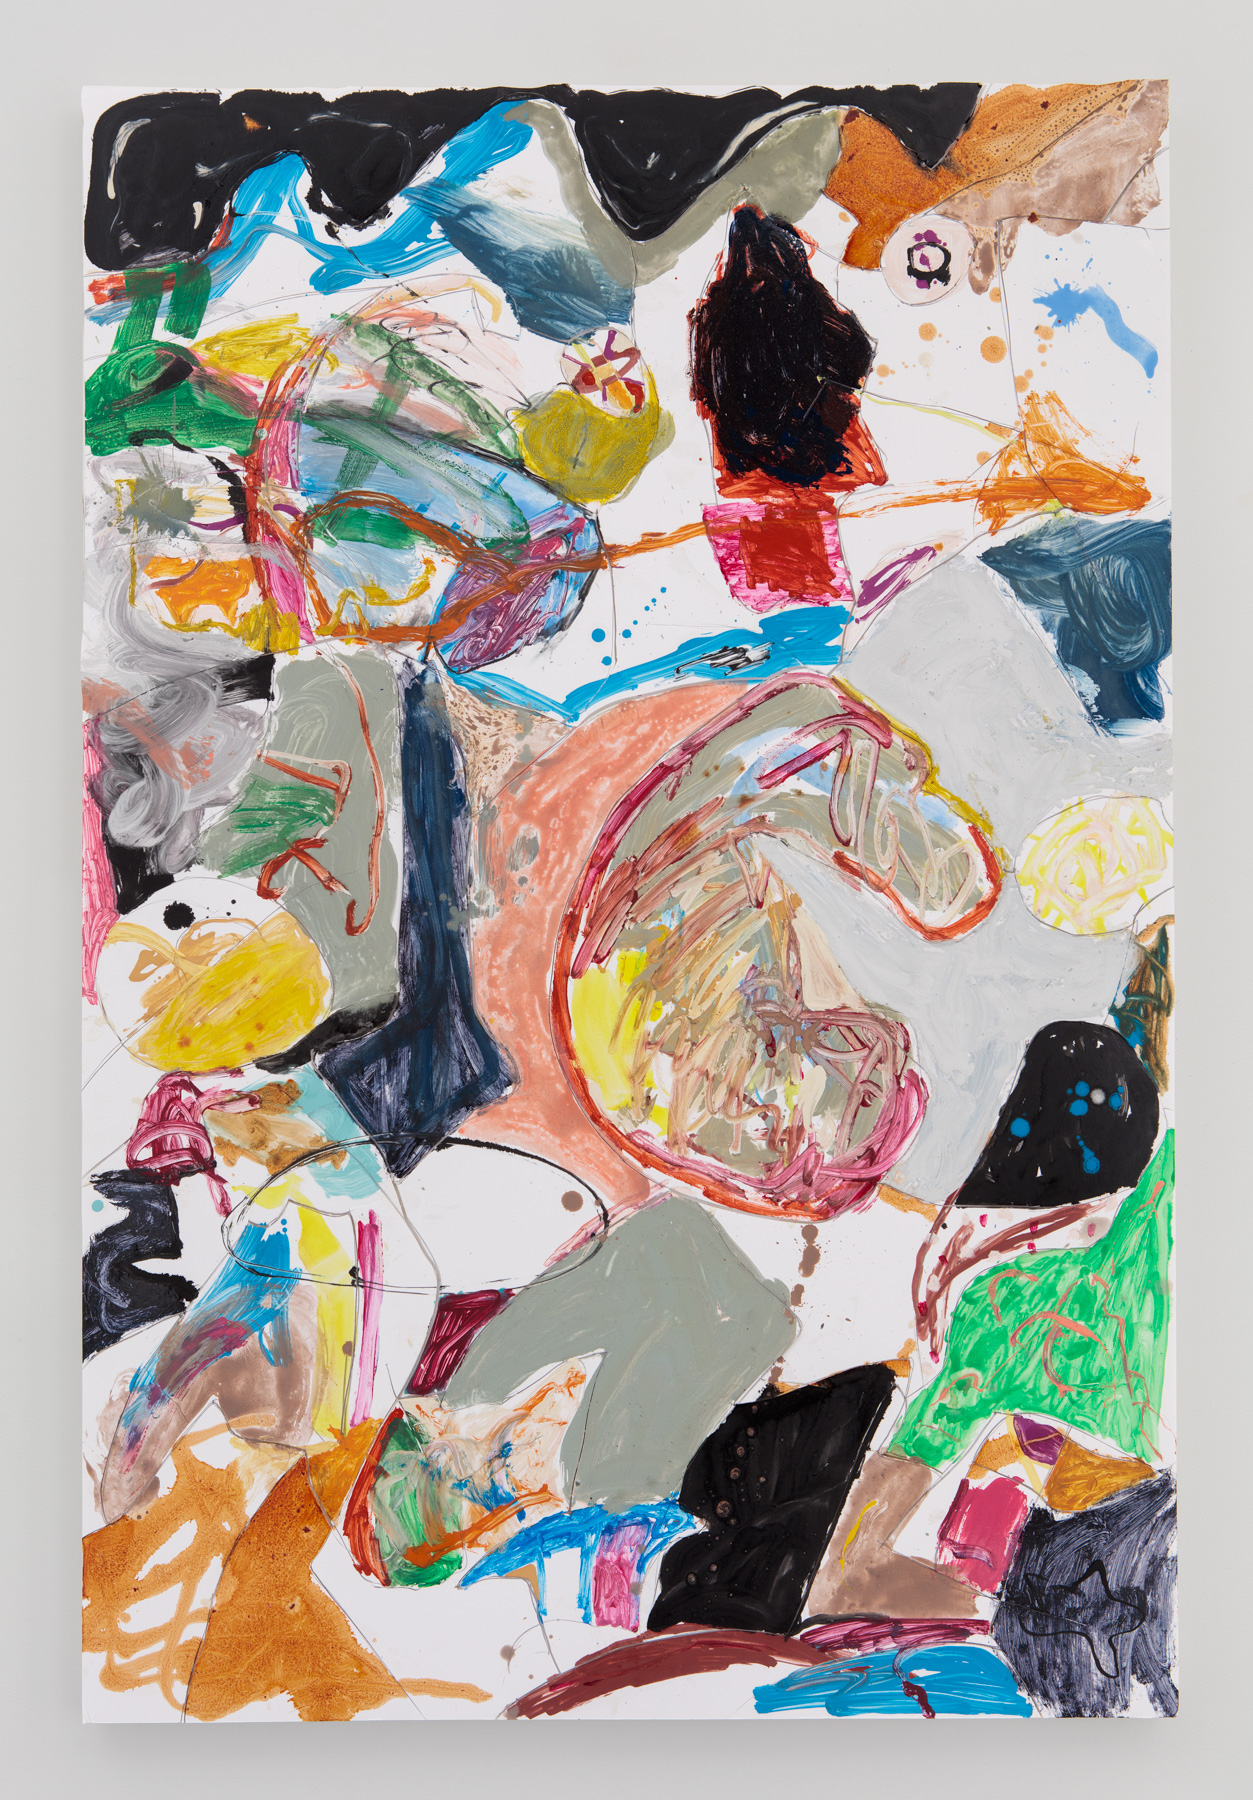 Dogged  48 inches x 32 inches  Oil, acrylic, enamel, foamcore on canvas  2015